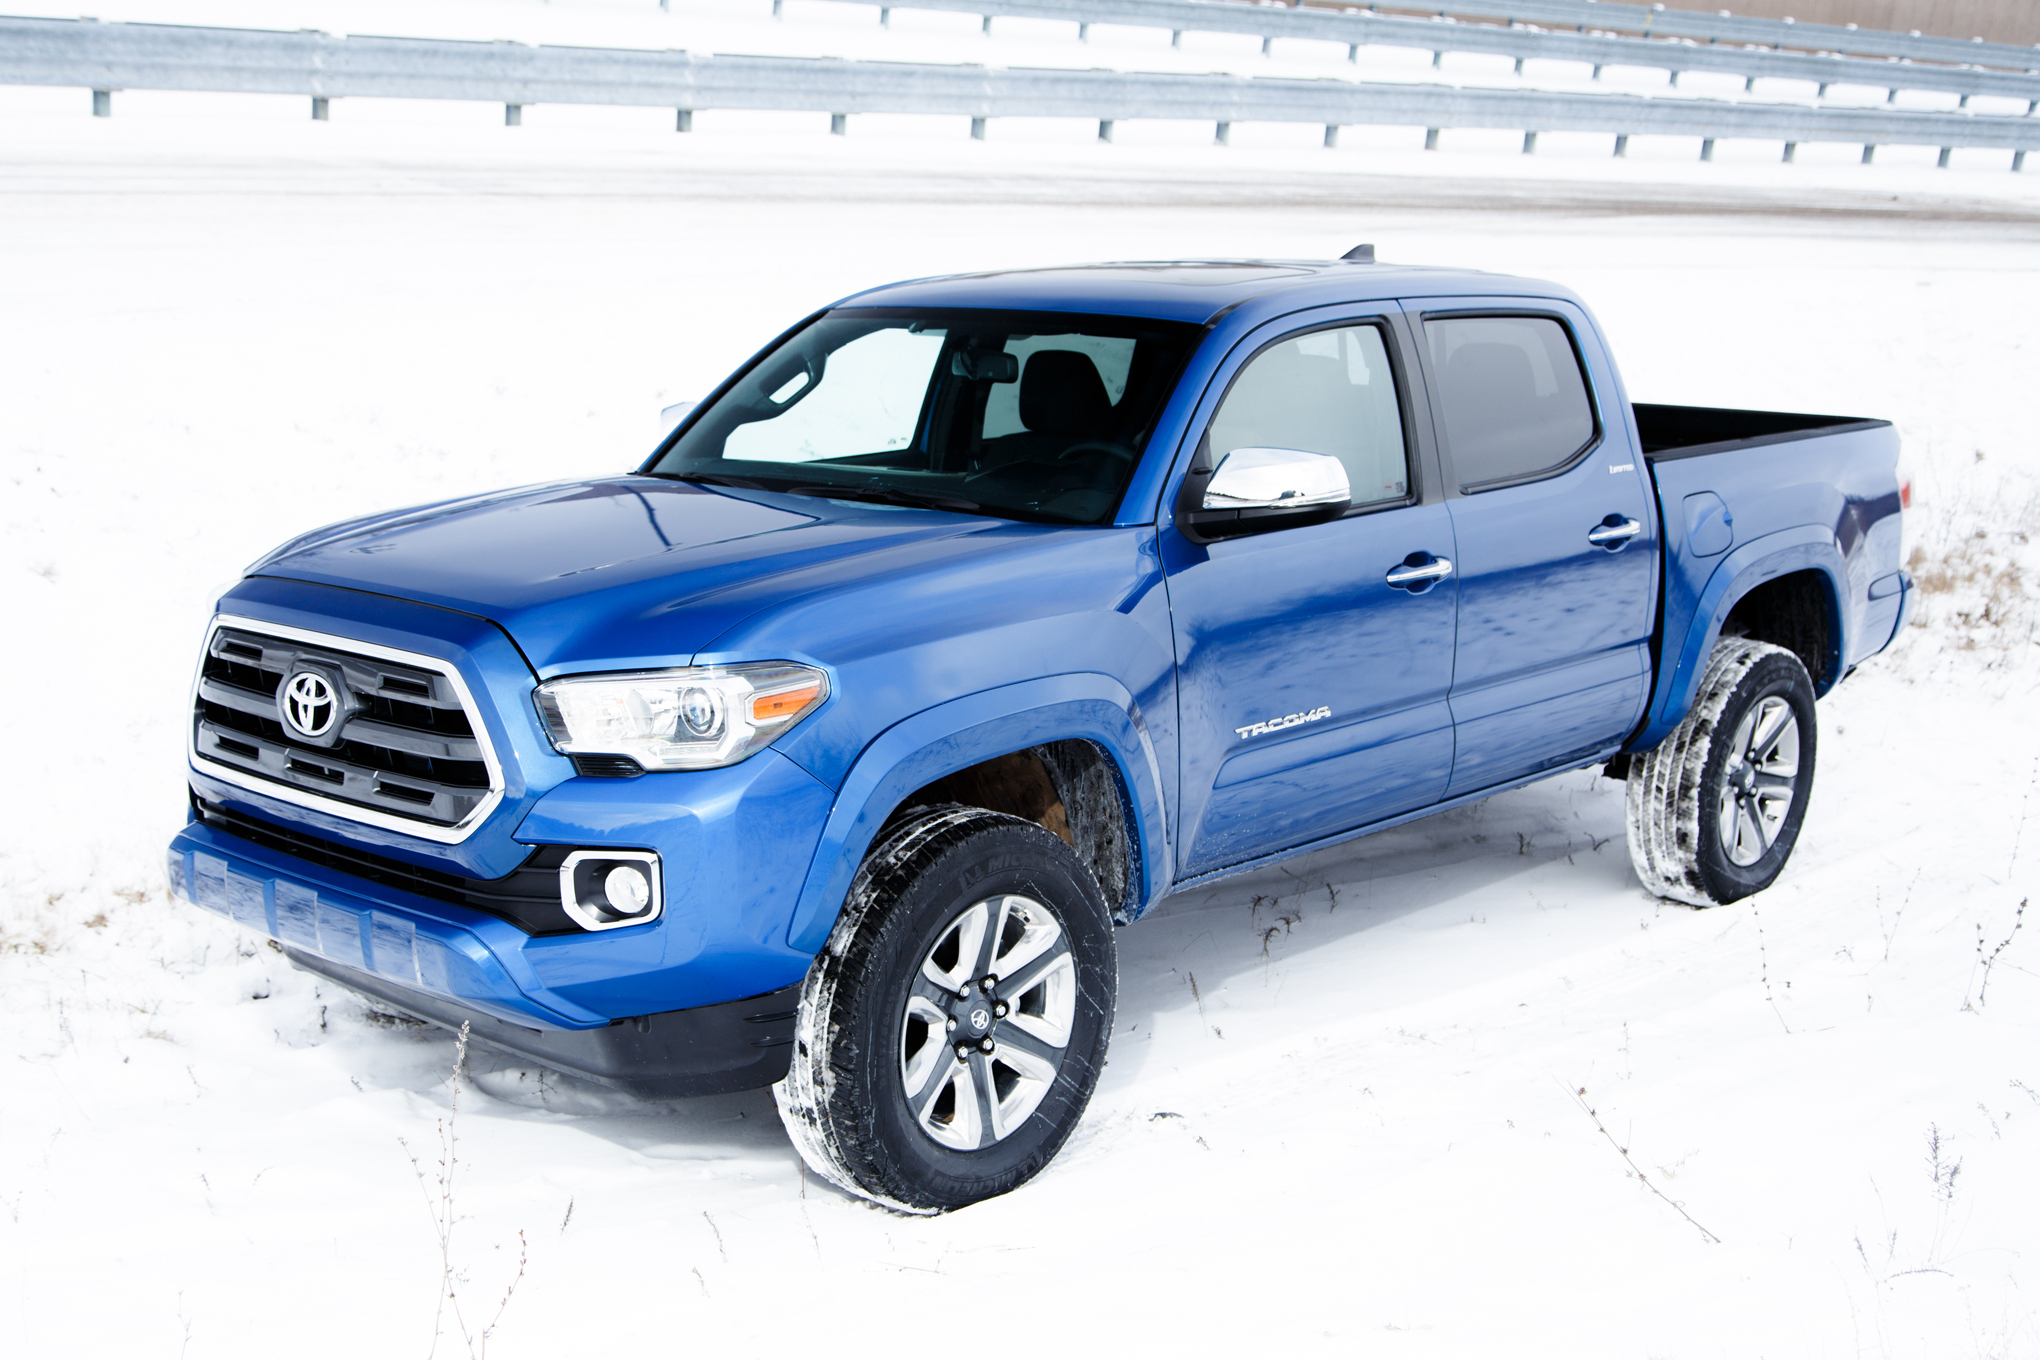 2016 toyota tacoma review 1177 cars performance reviews and test drive. Black Bedroom Furniture Sets. Home Design Ideas